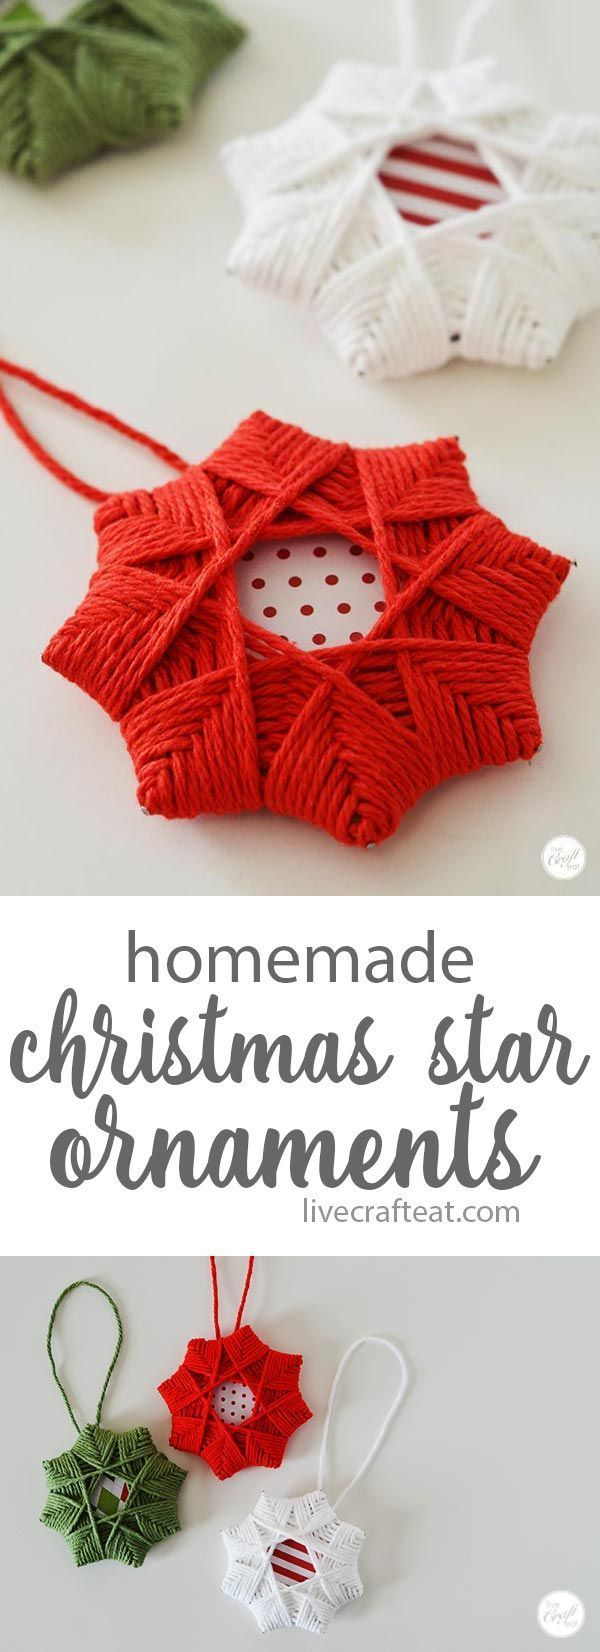 Looking for christmas ornaments - Homemade Christmas Tree Star Ornament With Yarn